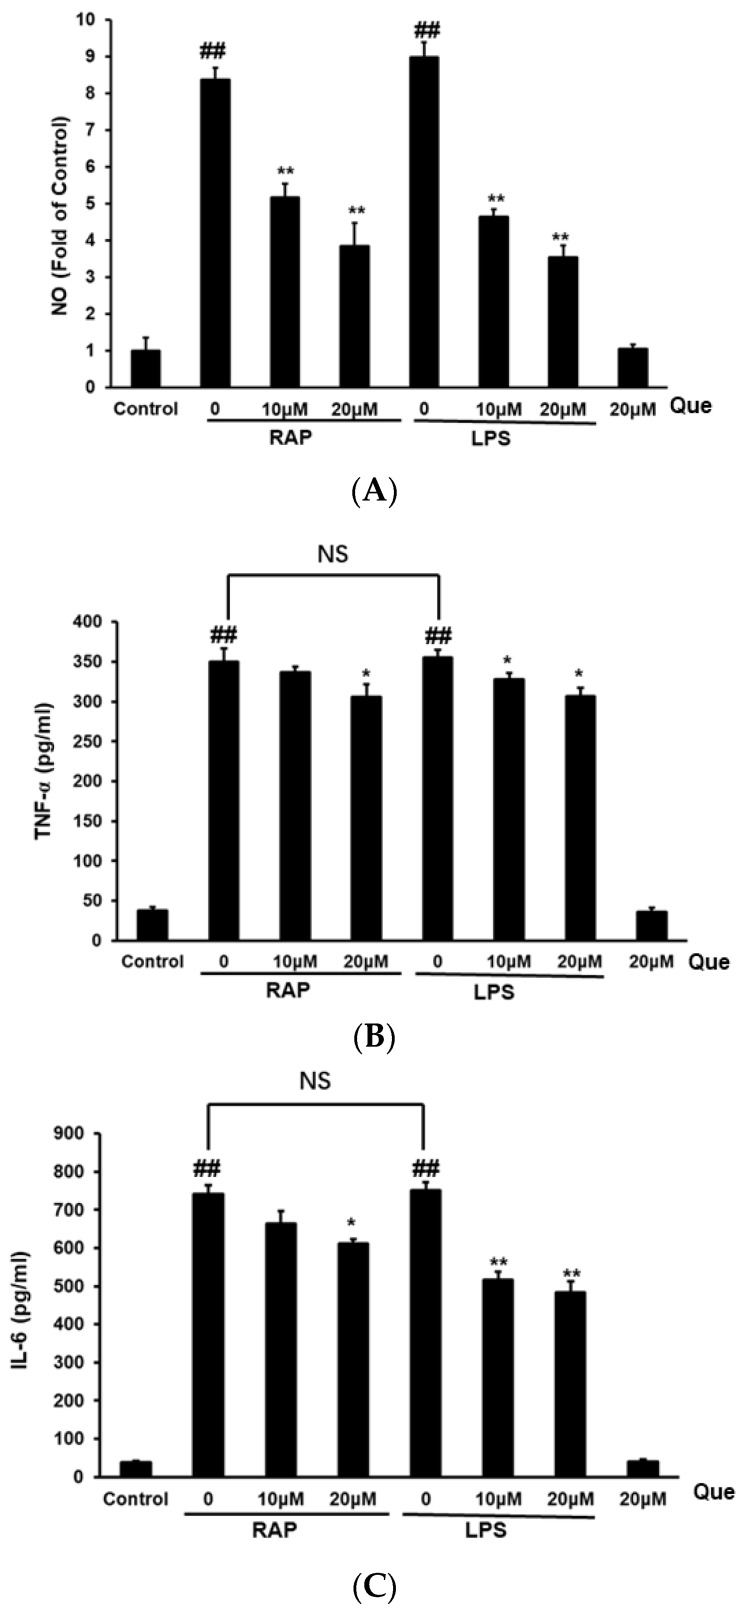 Effects of quercetin on nitric oxide (NO) ( A ), TNF-α ( B ) and IL-6 ( C ) production in RAP- and LPS-induced RAW264.7 macrophages. RAW264.7 cells were incubated with quercetin (10, 20 μM) and then treated with RAP (100 μg/mL) or LPS (100 ng/mL) for 24 h. Data from the experiments are expressed as mean ± SD (## p